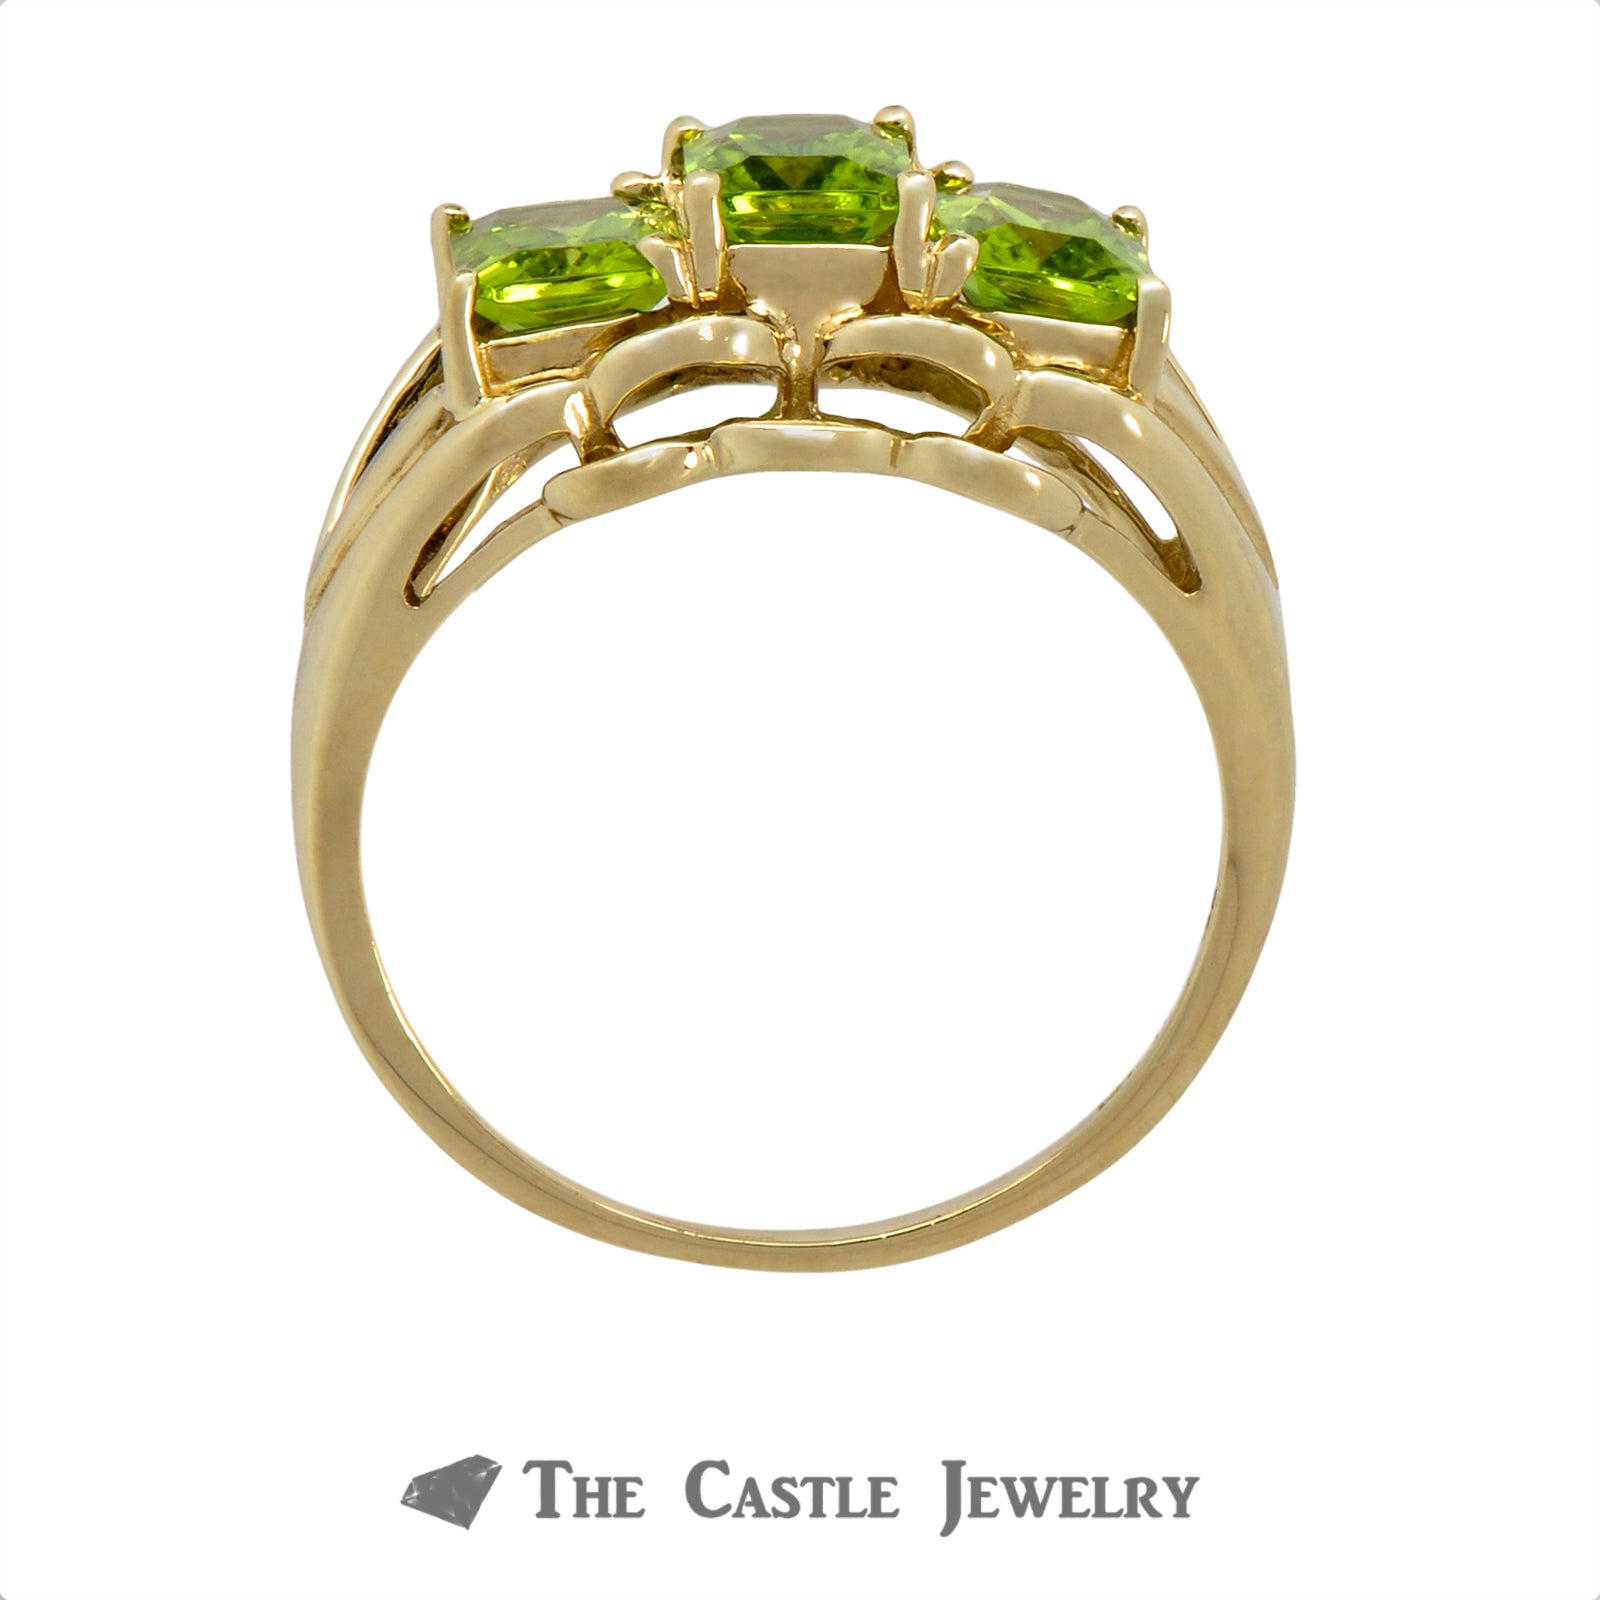 Lovely Three Stone Emerald Cut Peridot Ring Crafted in 14k Yellow Gold-1